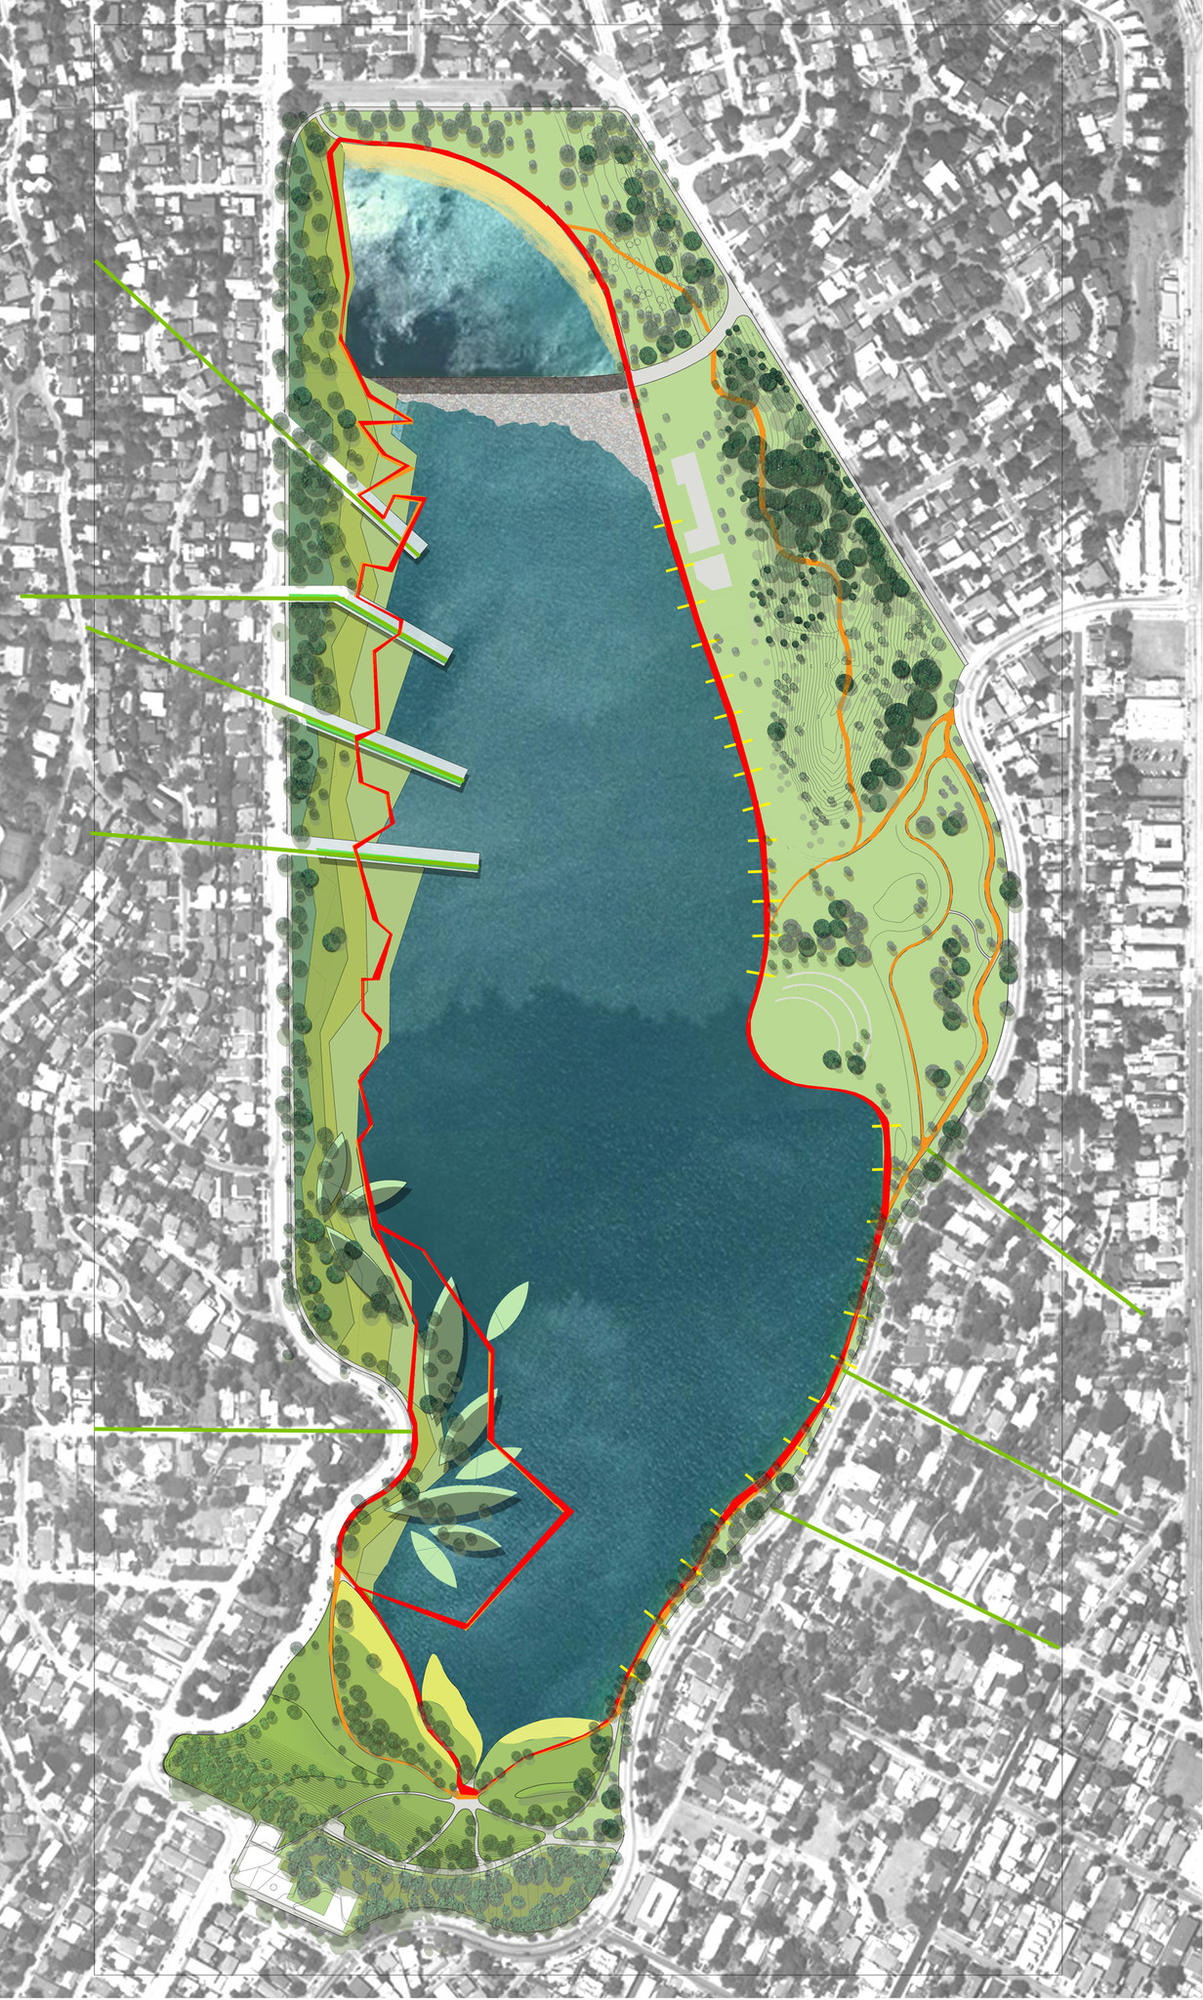 Silverlake Los Angeles Map.What Do We Do With The Silver Lake Reservoirs Los Angeles Times